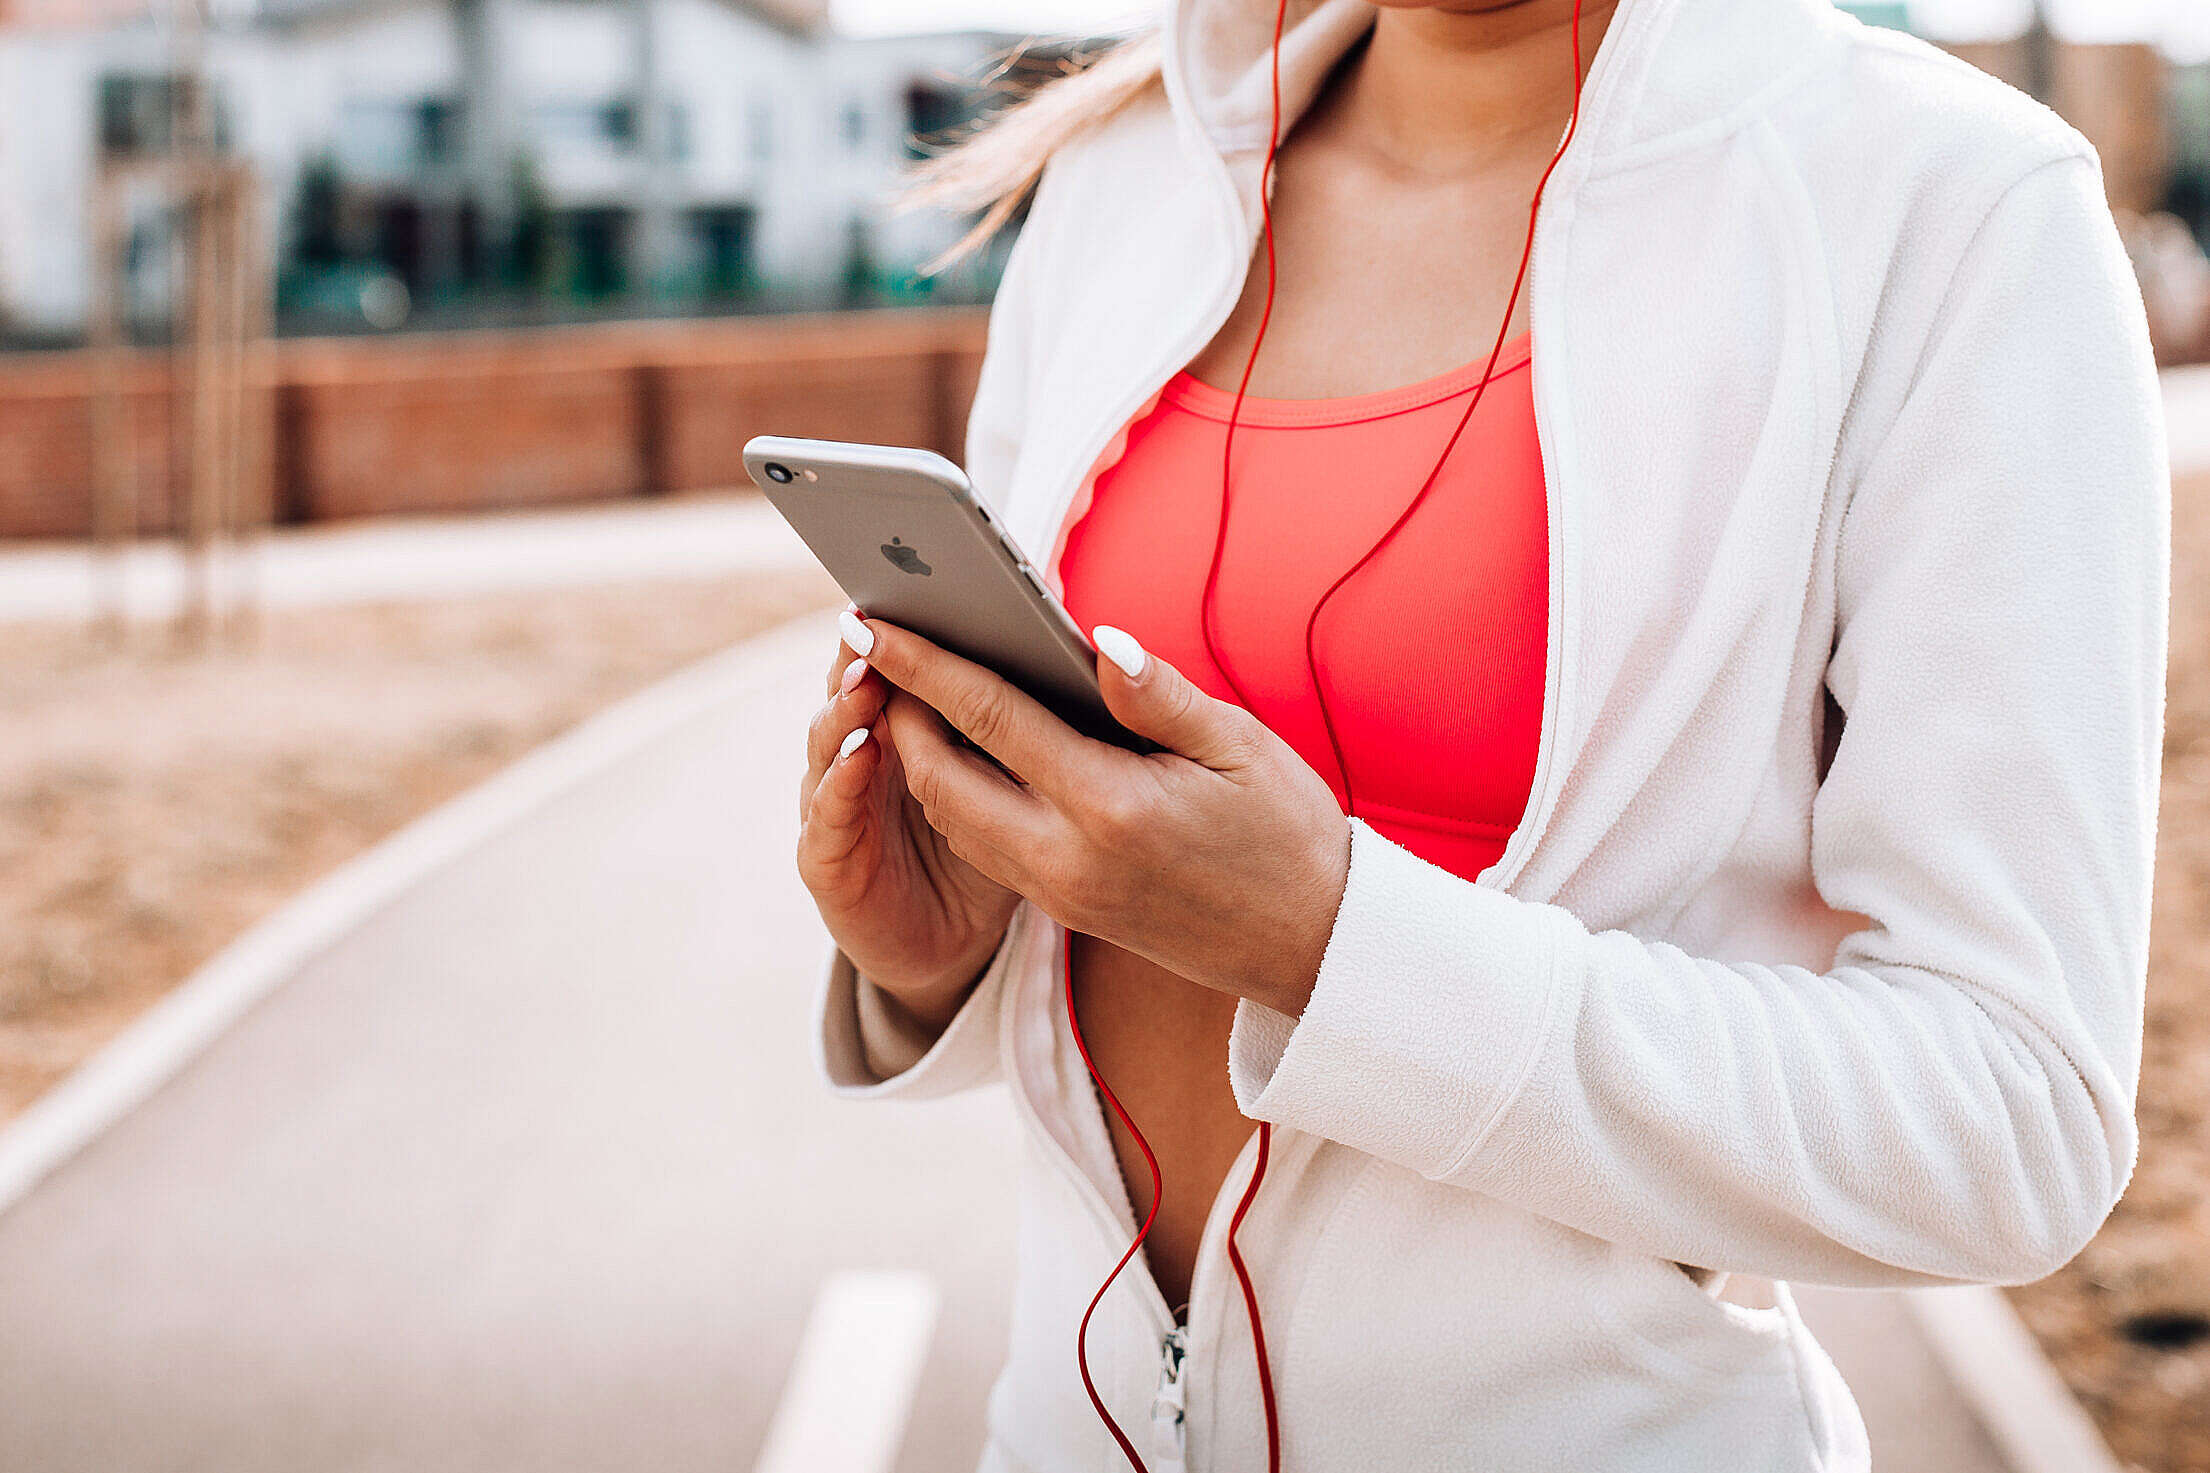 Fit Girl Listening to Music on Her iPhone Free Stock Photo